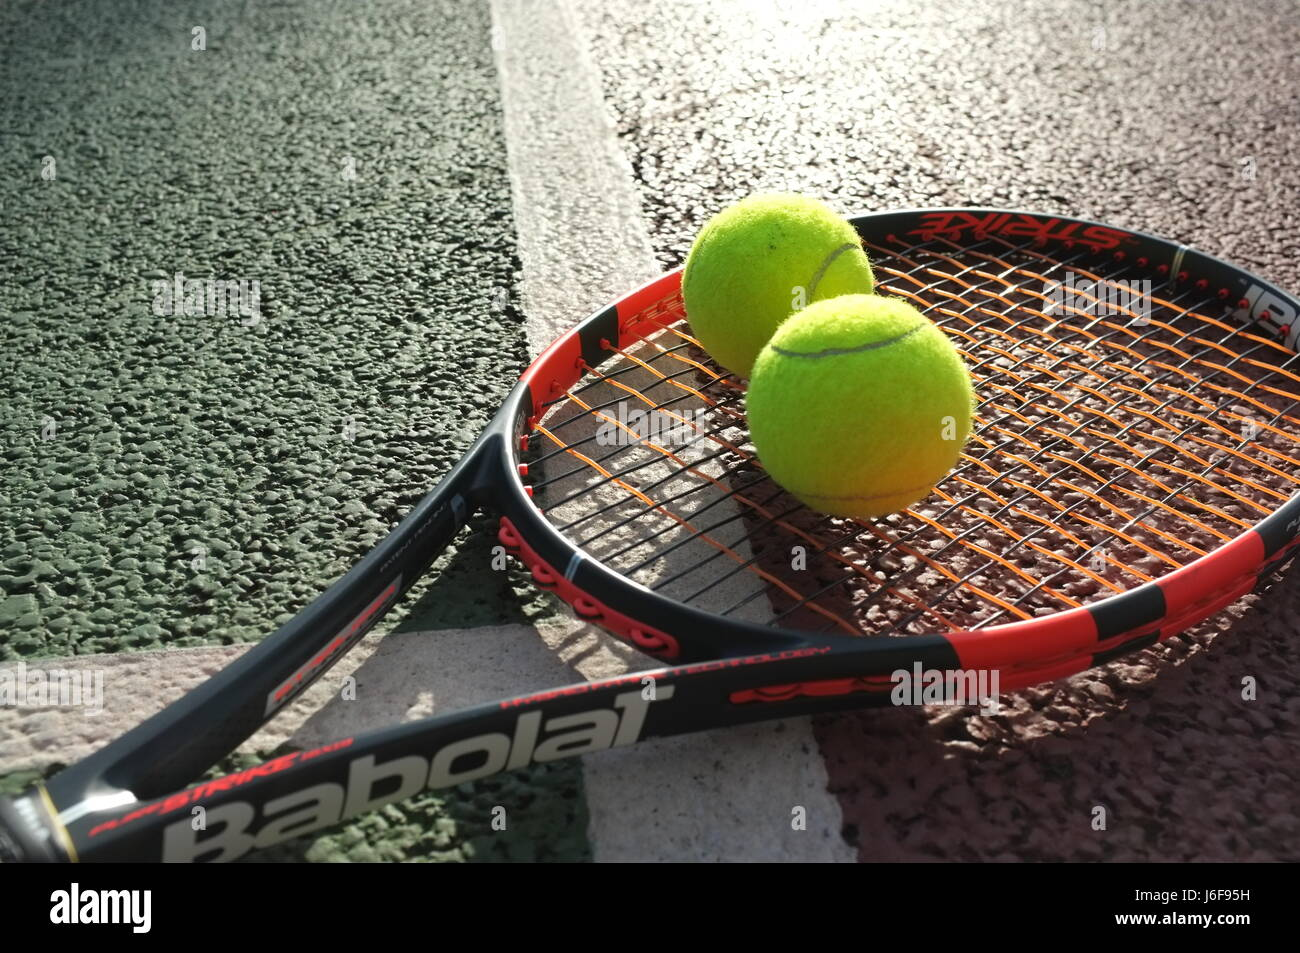 Tennis balls on a Babolat racquet on a hard court in London, UK Stock Photo